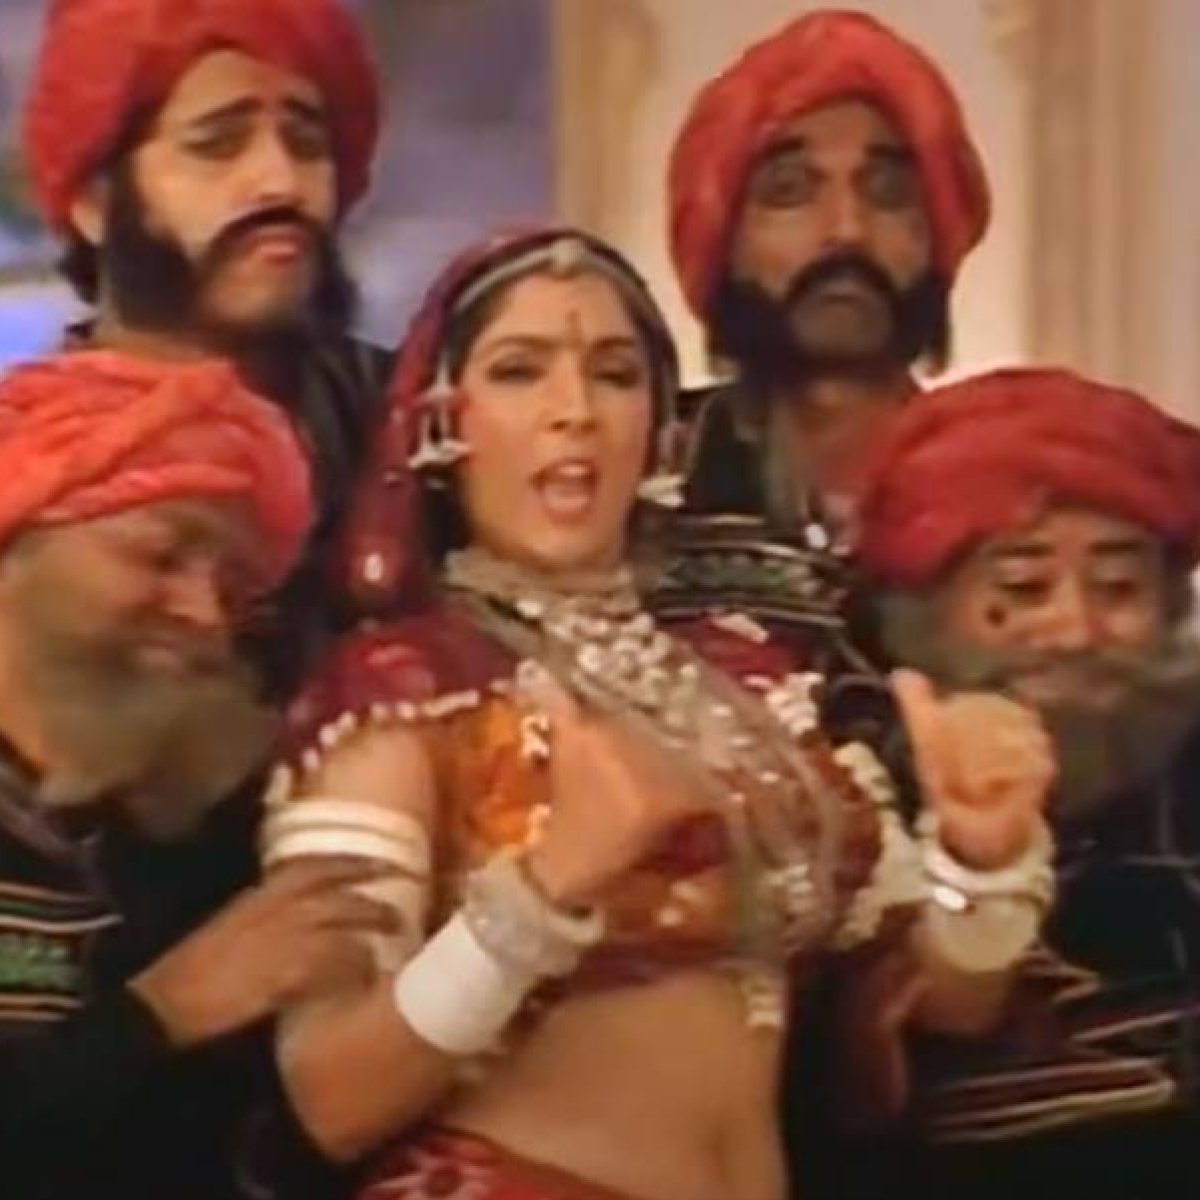 'I was presented to him with a heavily padded bra': When Subhash Ghai wanted Neena Gupta's 'choli' to be filled